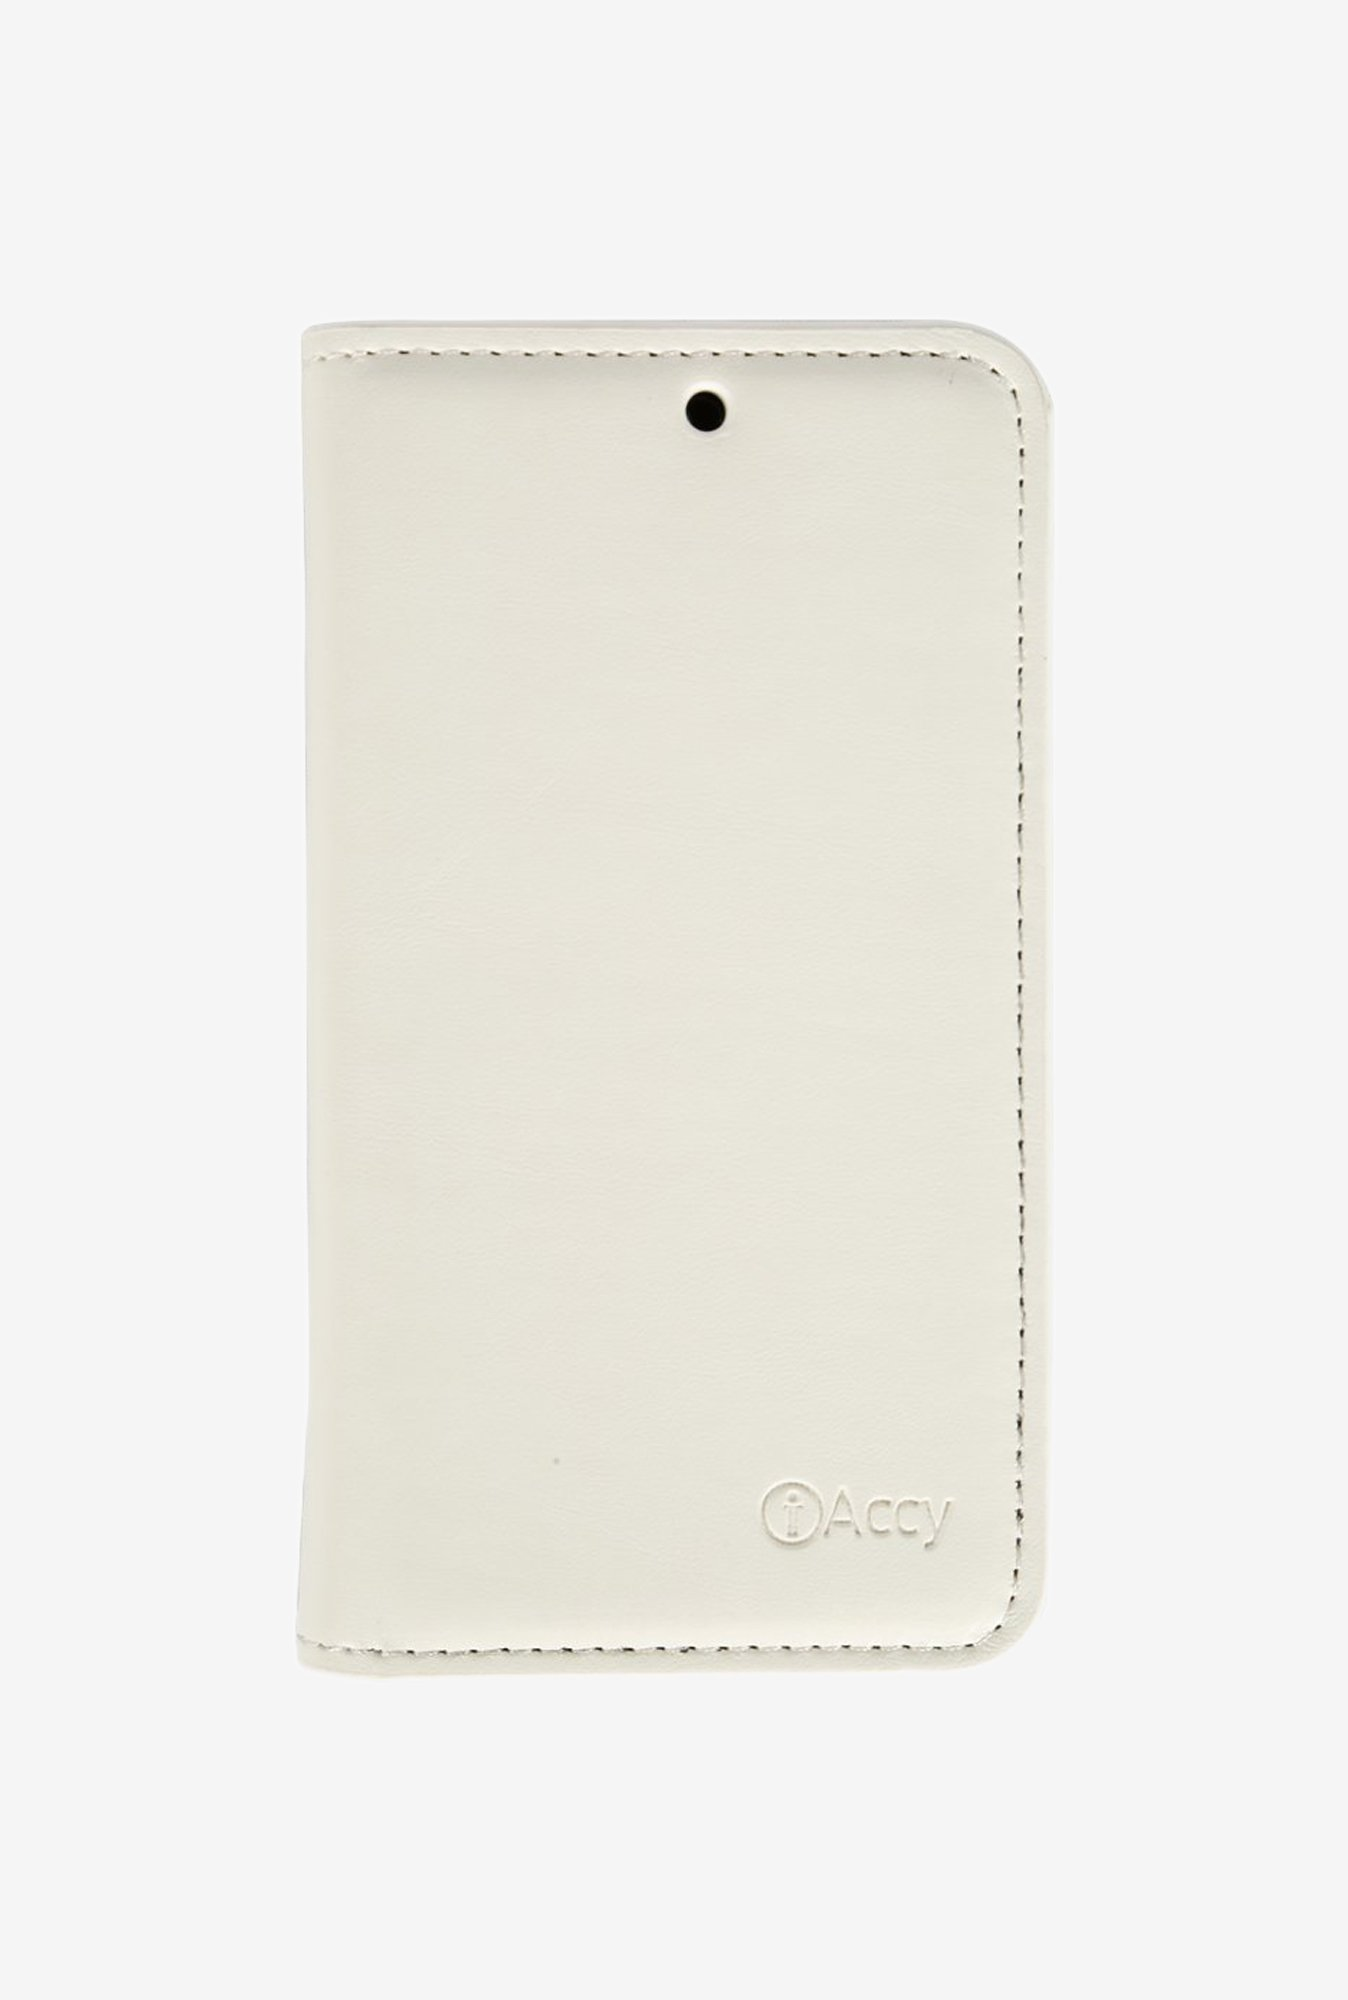 iAccy LGC005 Flip Cover White for LG Nexus 5